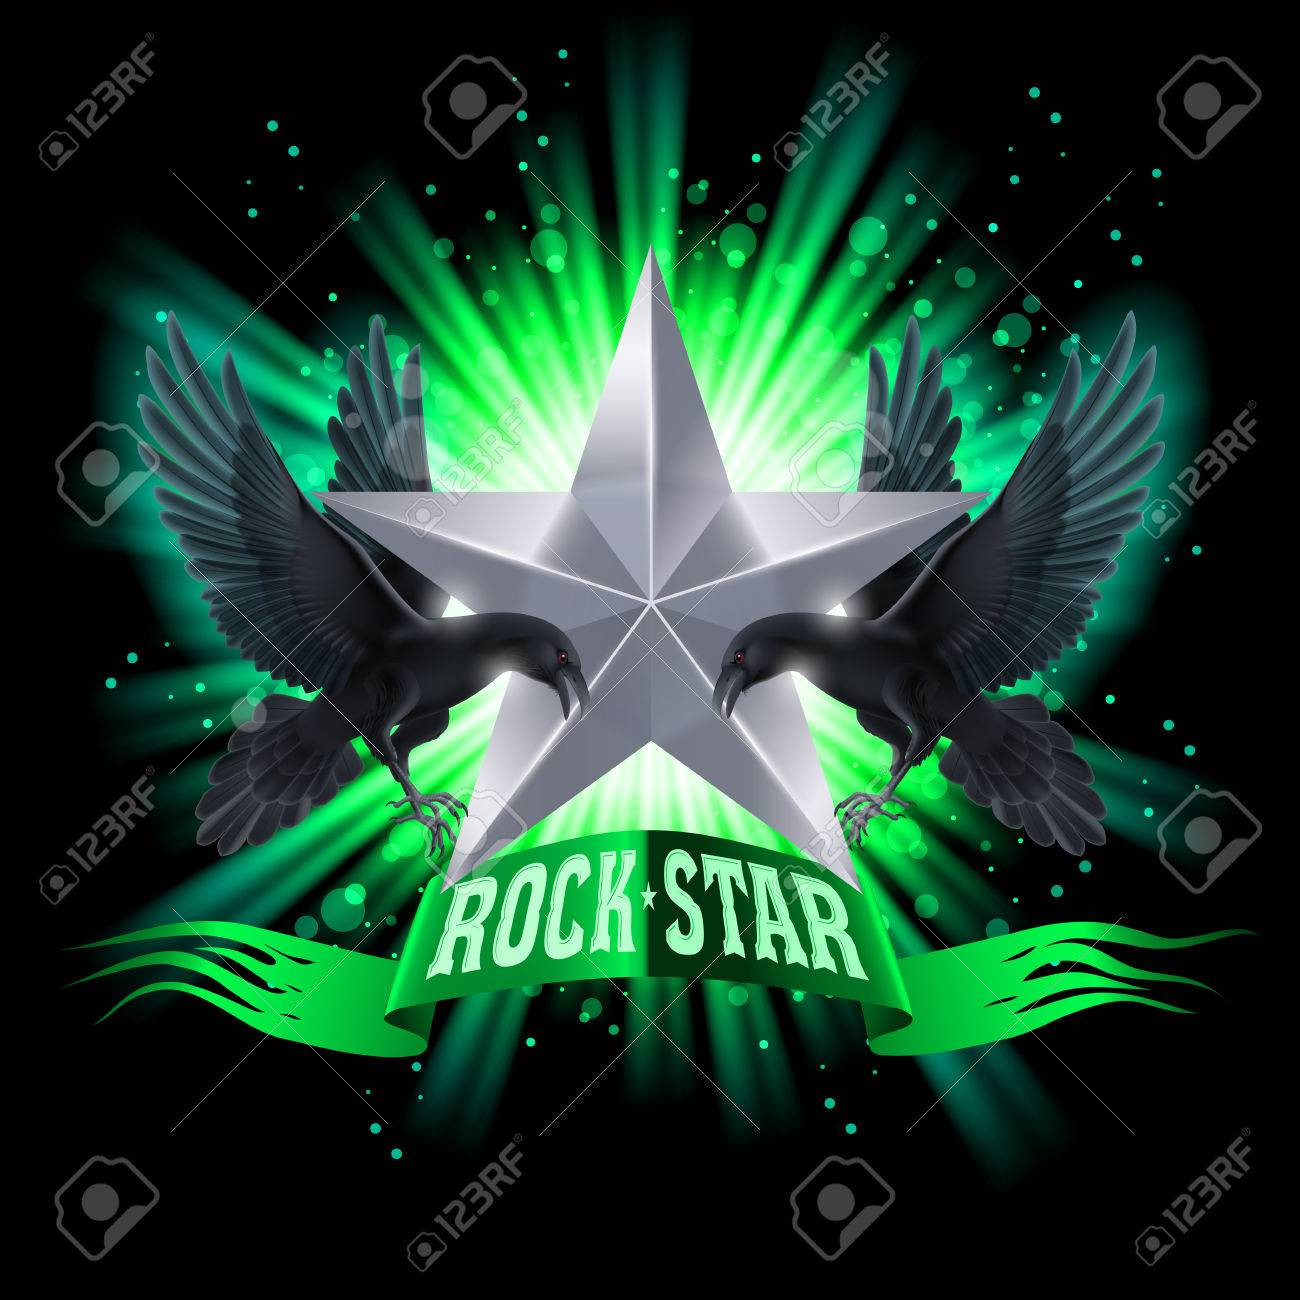 Green Rock Star Banner With Two Ravens Over Shining Background